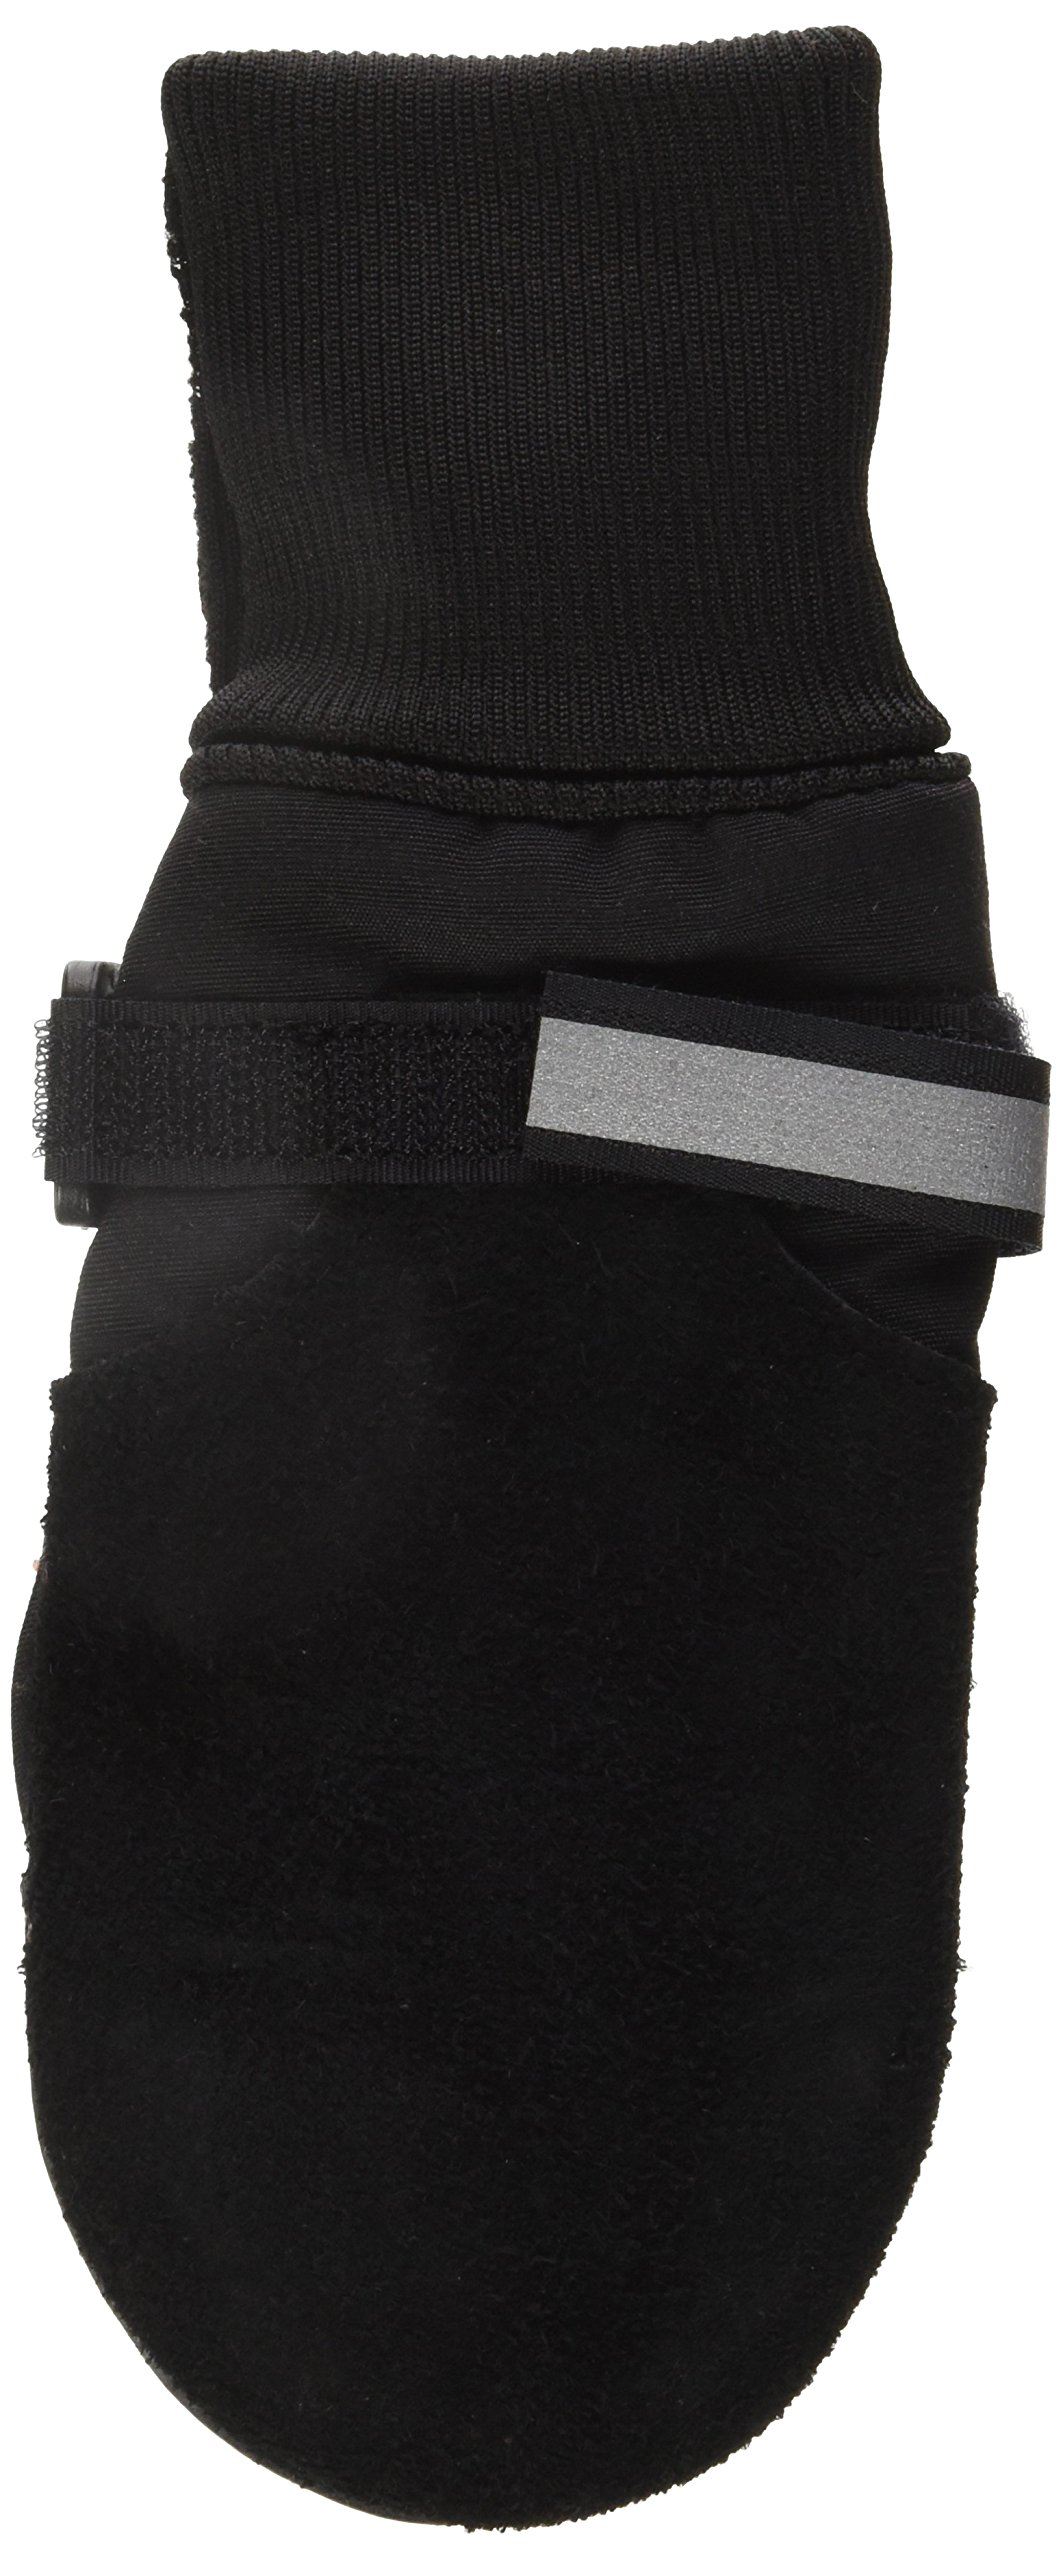 Muttluks Fleece Lined Muttluks Dog Boots - Set of 4, Large (3.75 to 4.25 inch), Black by Muttluks